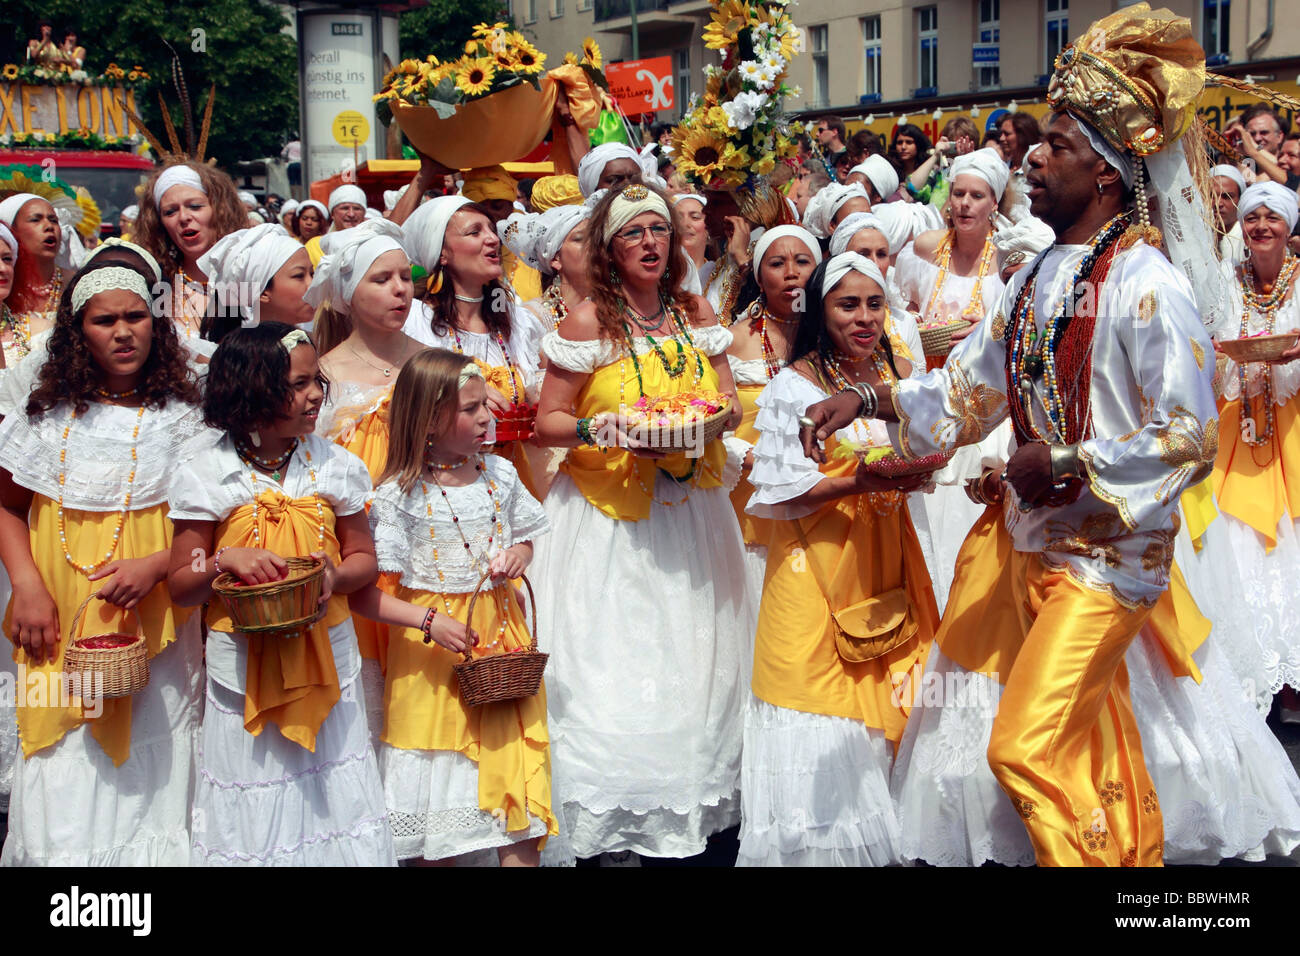 Germany Berlin Carnival of Cultures group of singers - Stock Image